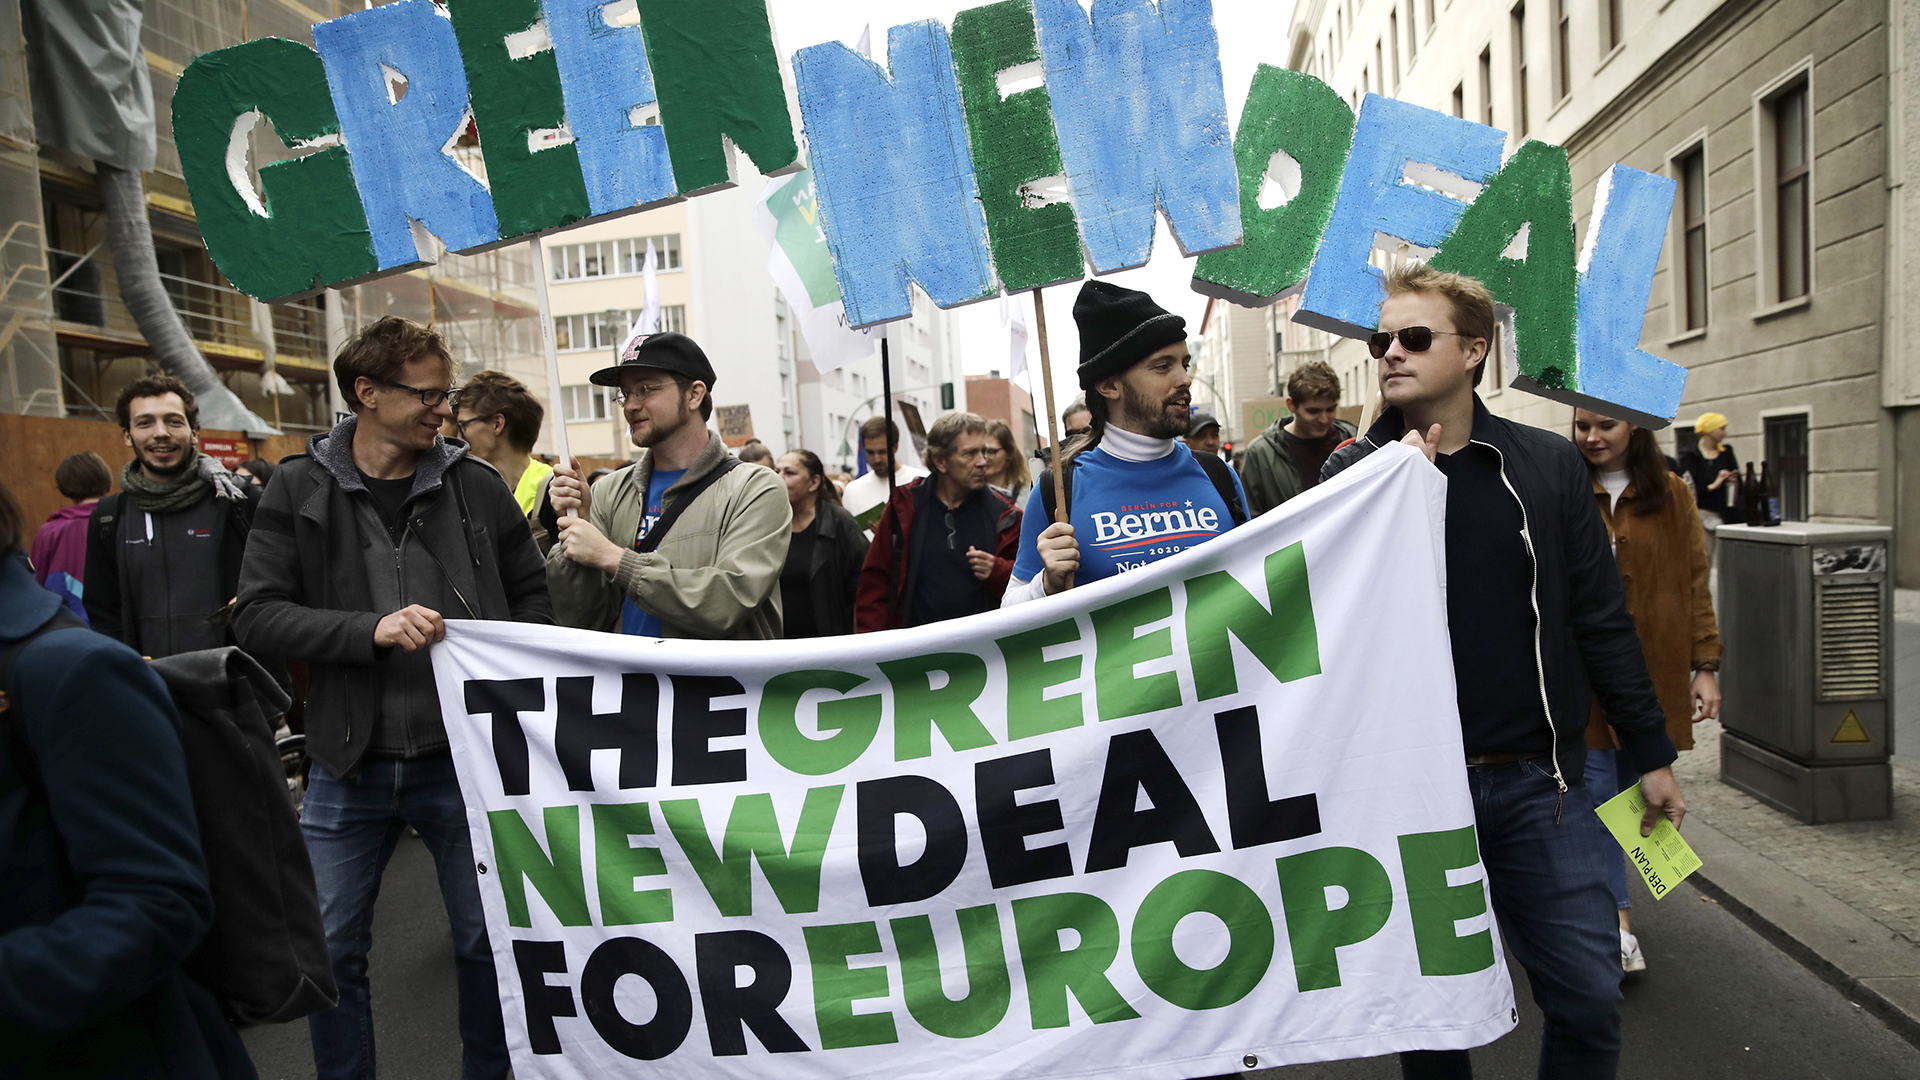 fridays for future, green deal europeo